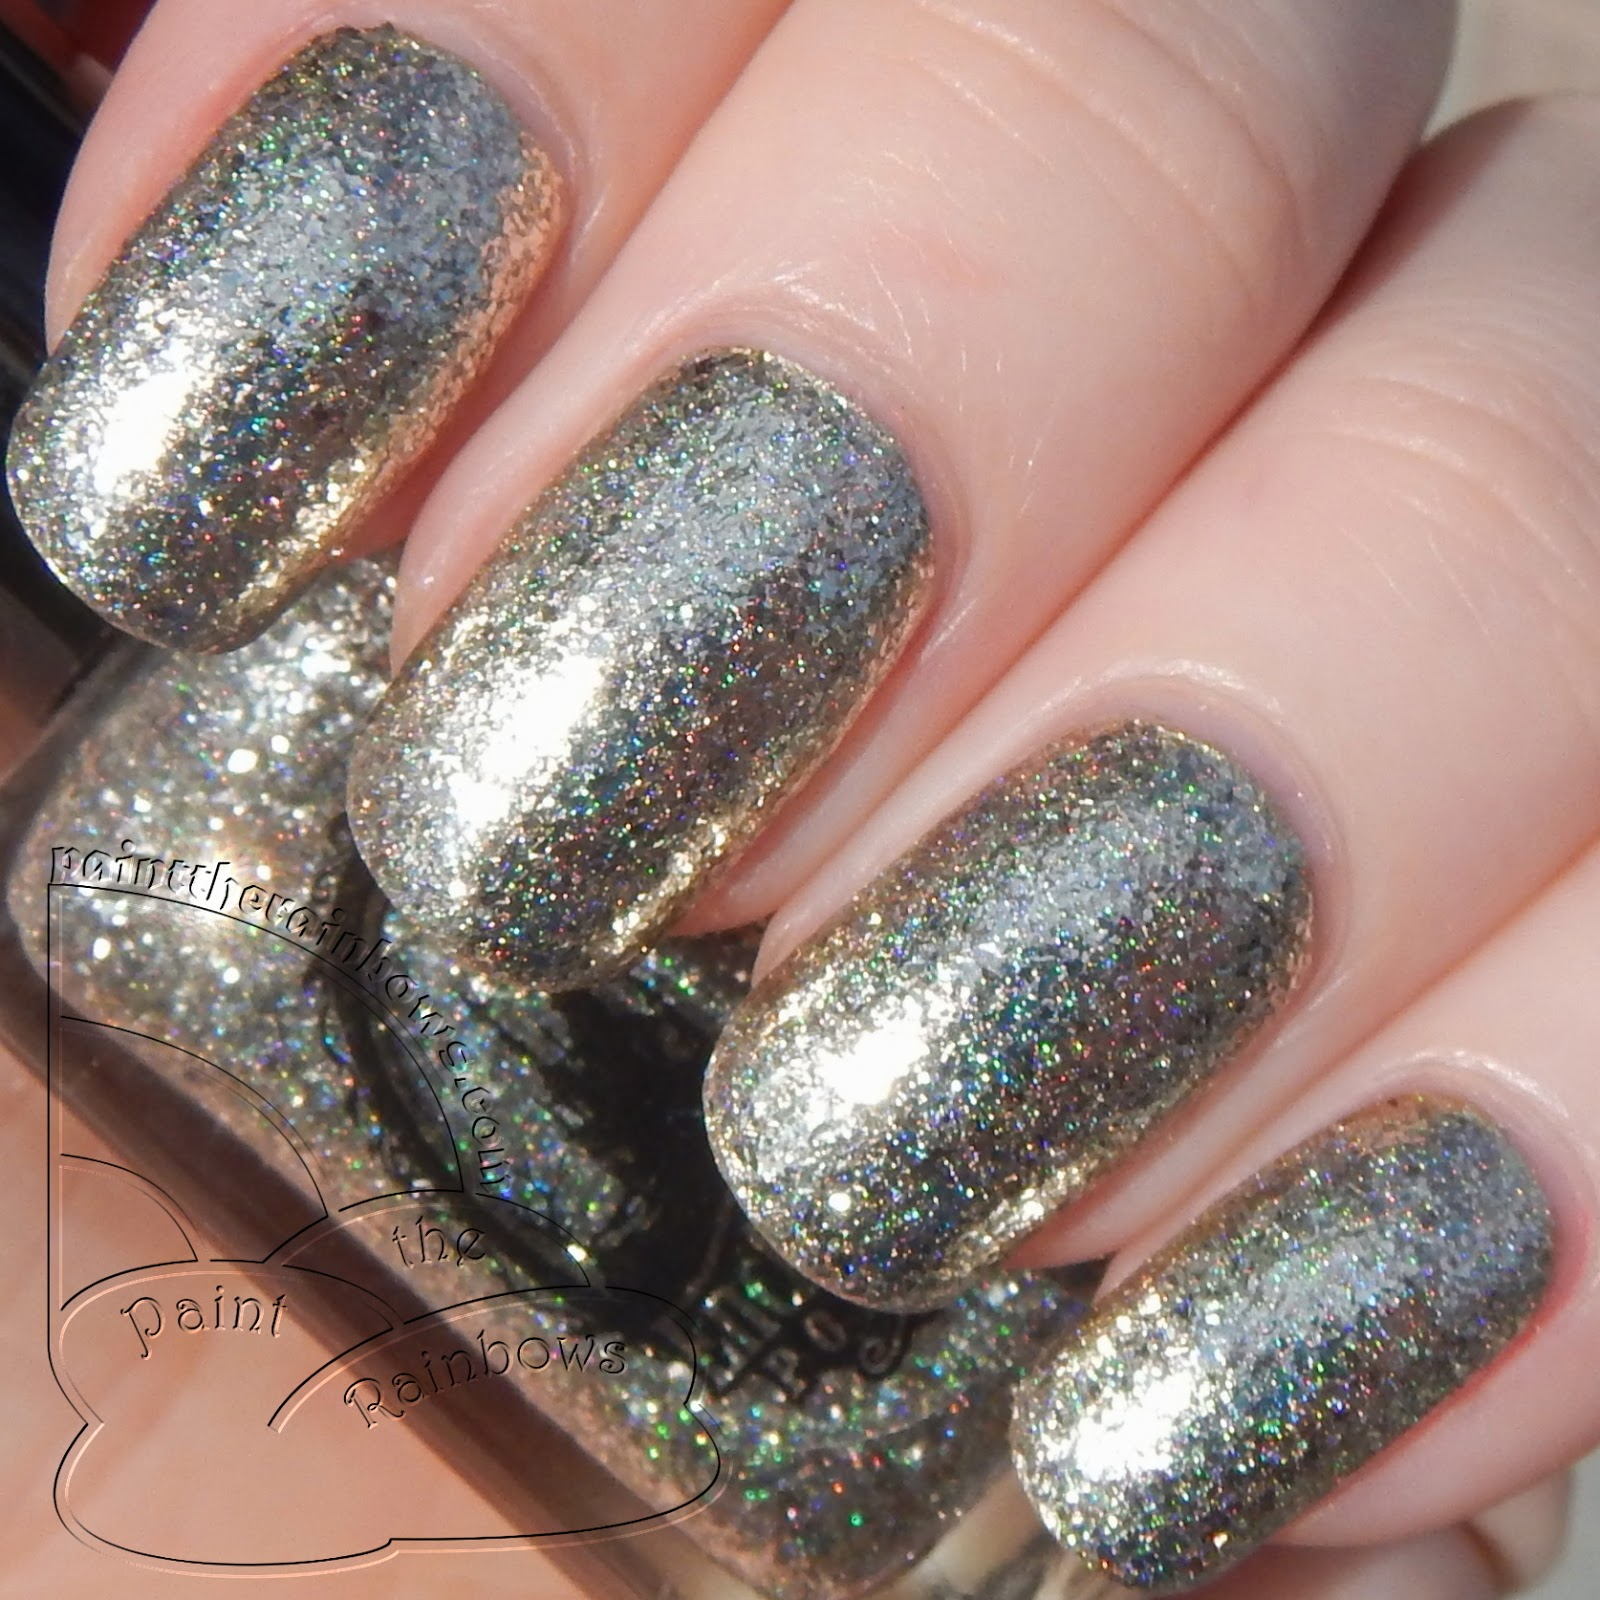 enchanted polish amazing